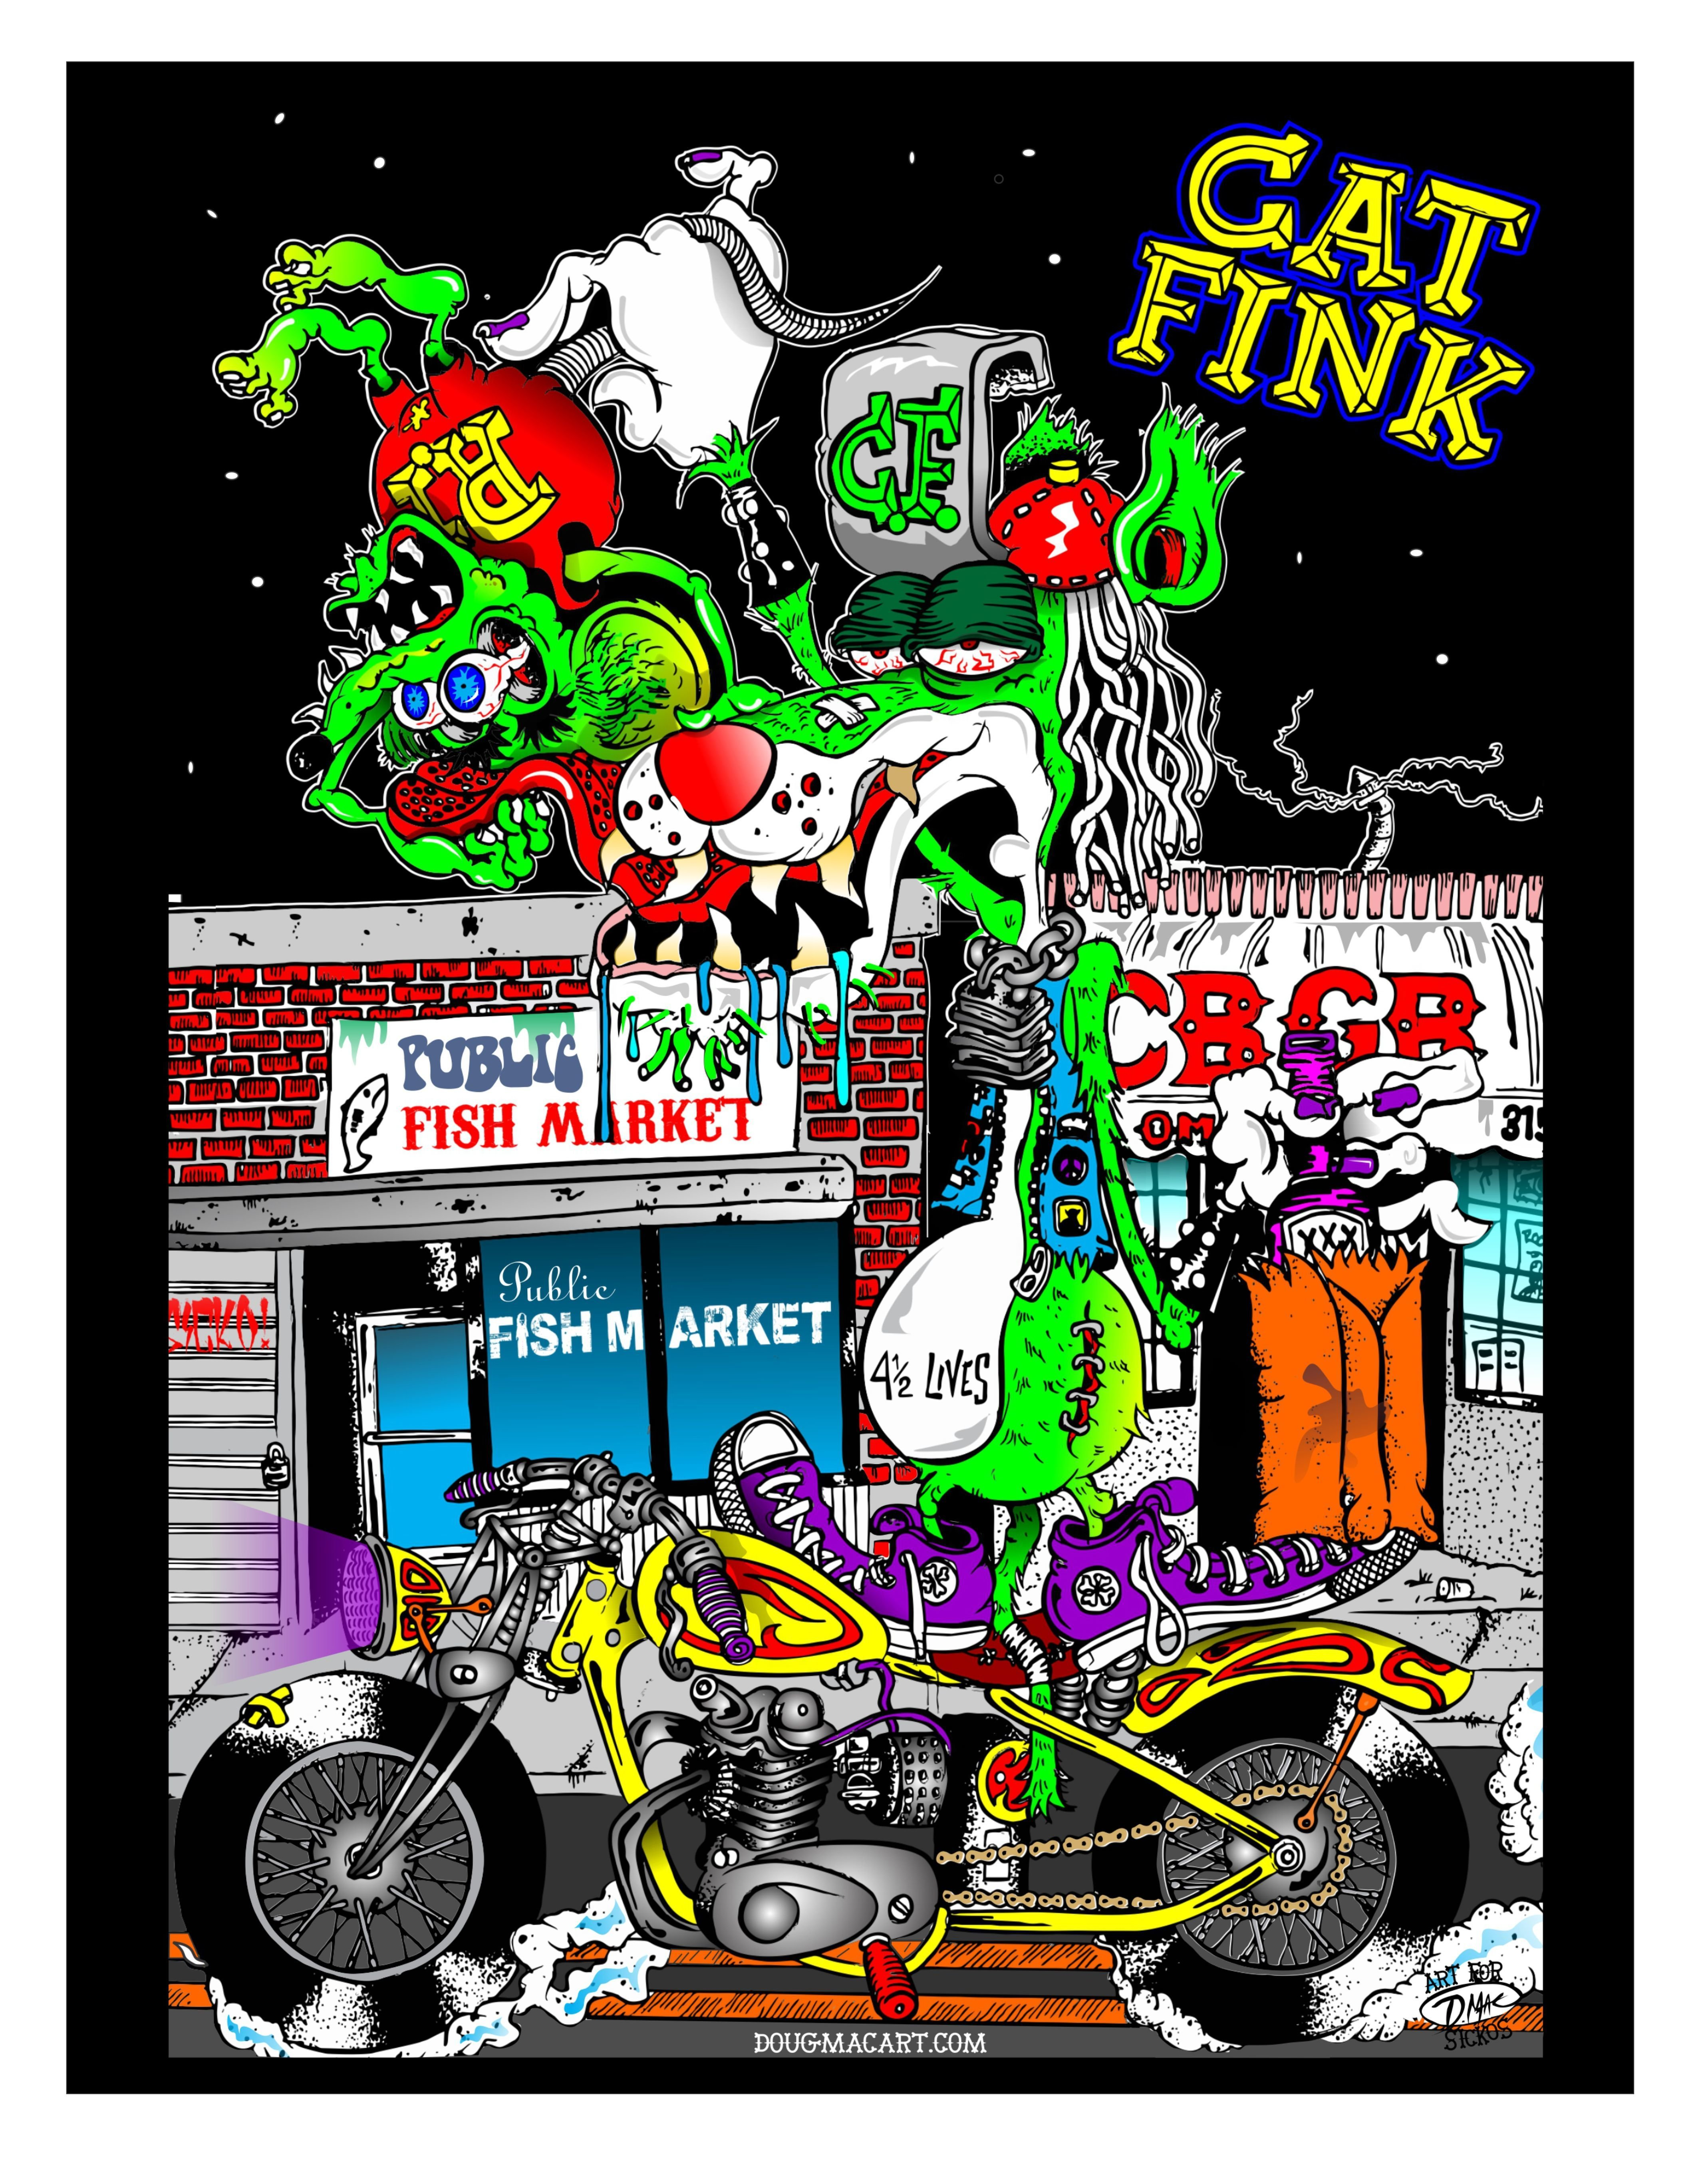 """Limited Poster 14.5x18"""" Signed And Numbered Only 10 Available Free Shipping 00032"""